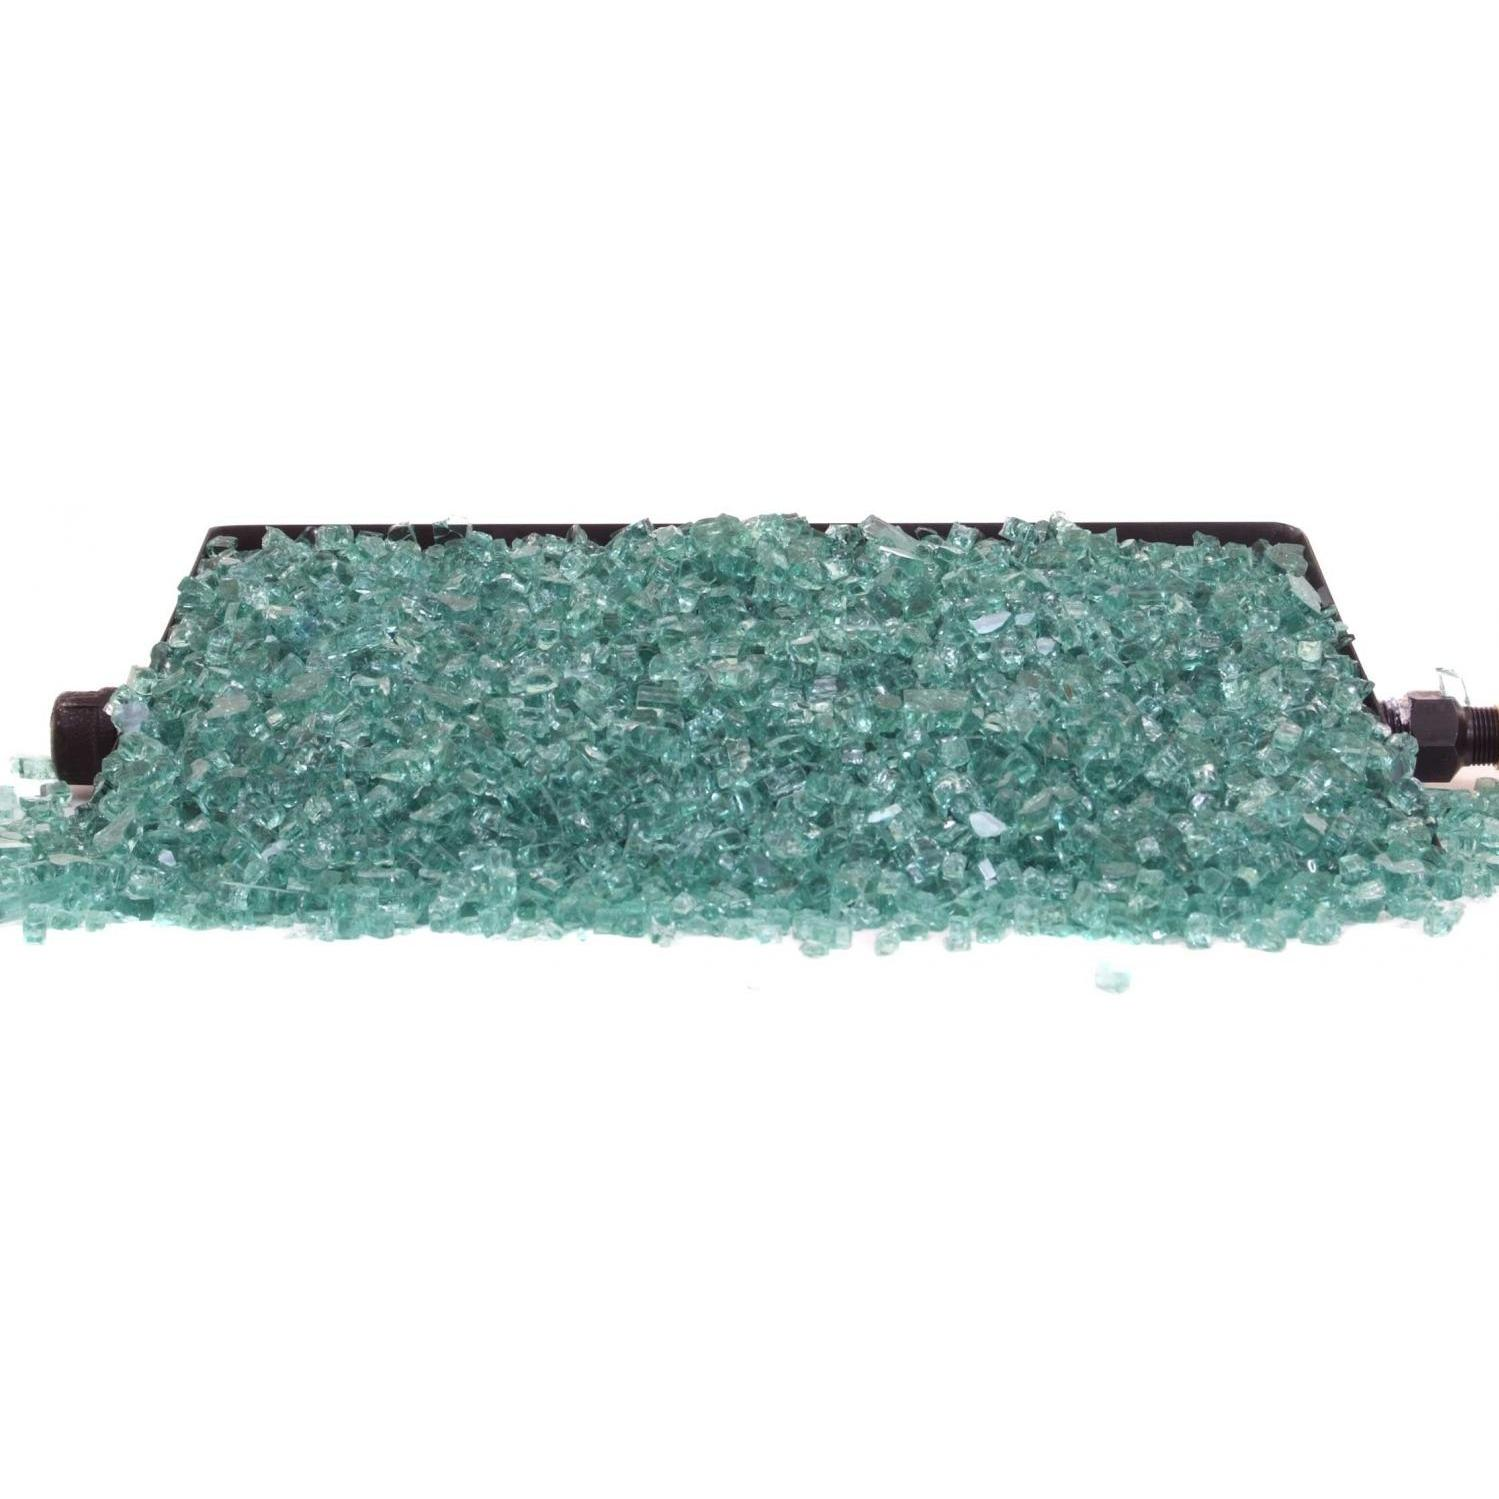 Peterson Real Fyre Peterson Fyre Glass 16 Inch Emerald See Thru Fire Glass Set With Vented Natural Gas G45 Burner - Variable Flame Remote at Sears.com